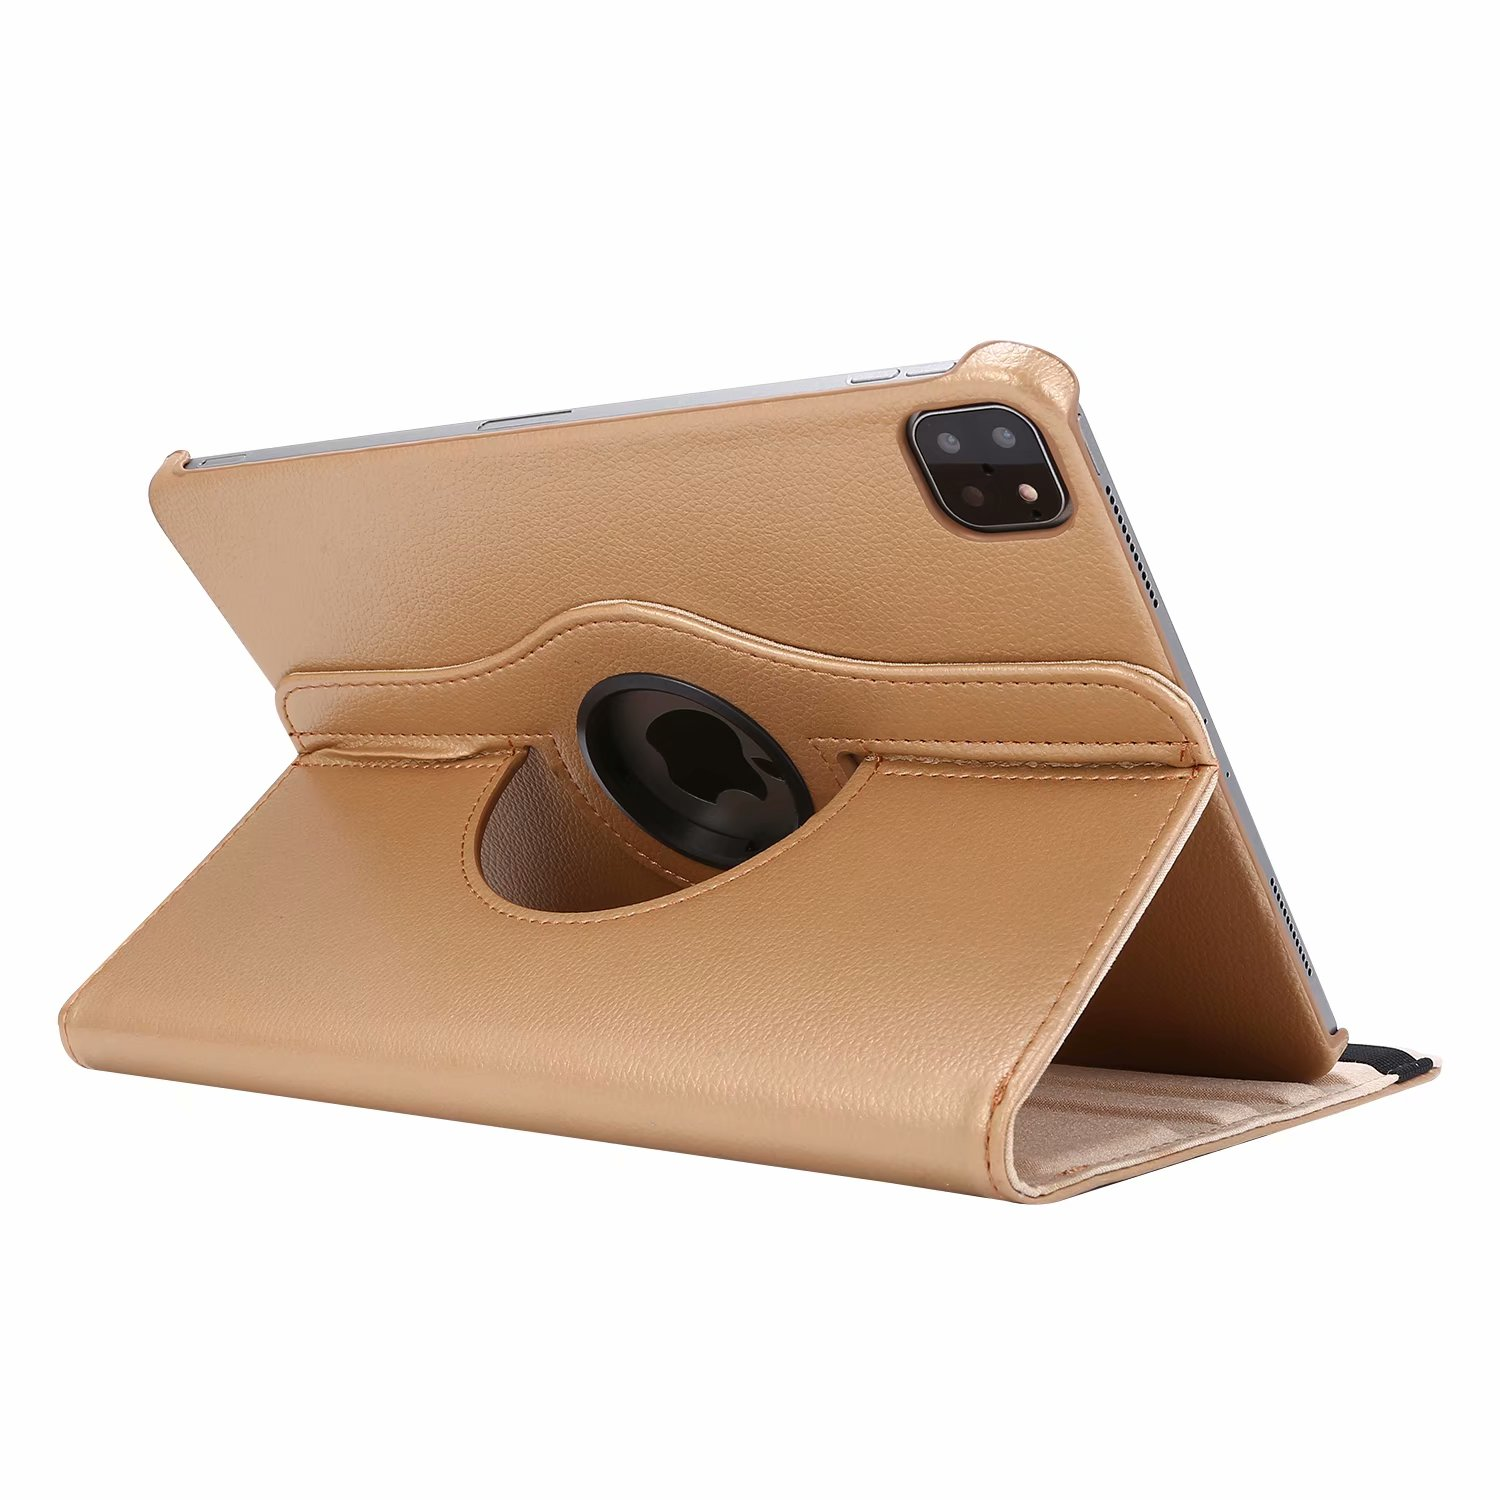 2021/2020/2018 A2068 Pro Cover Case A2230 A1934 A2013 A2228 A1980 360 for Degree 11 iPad